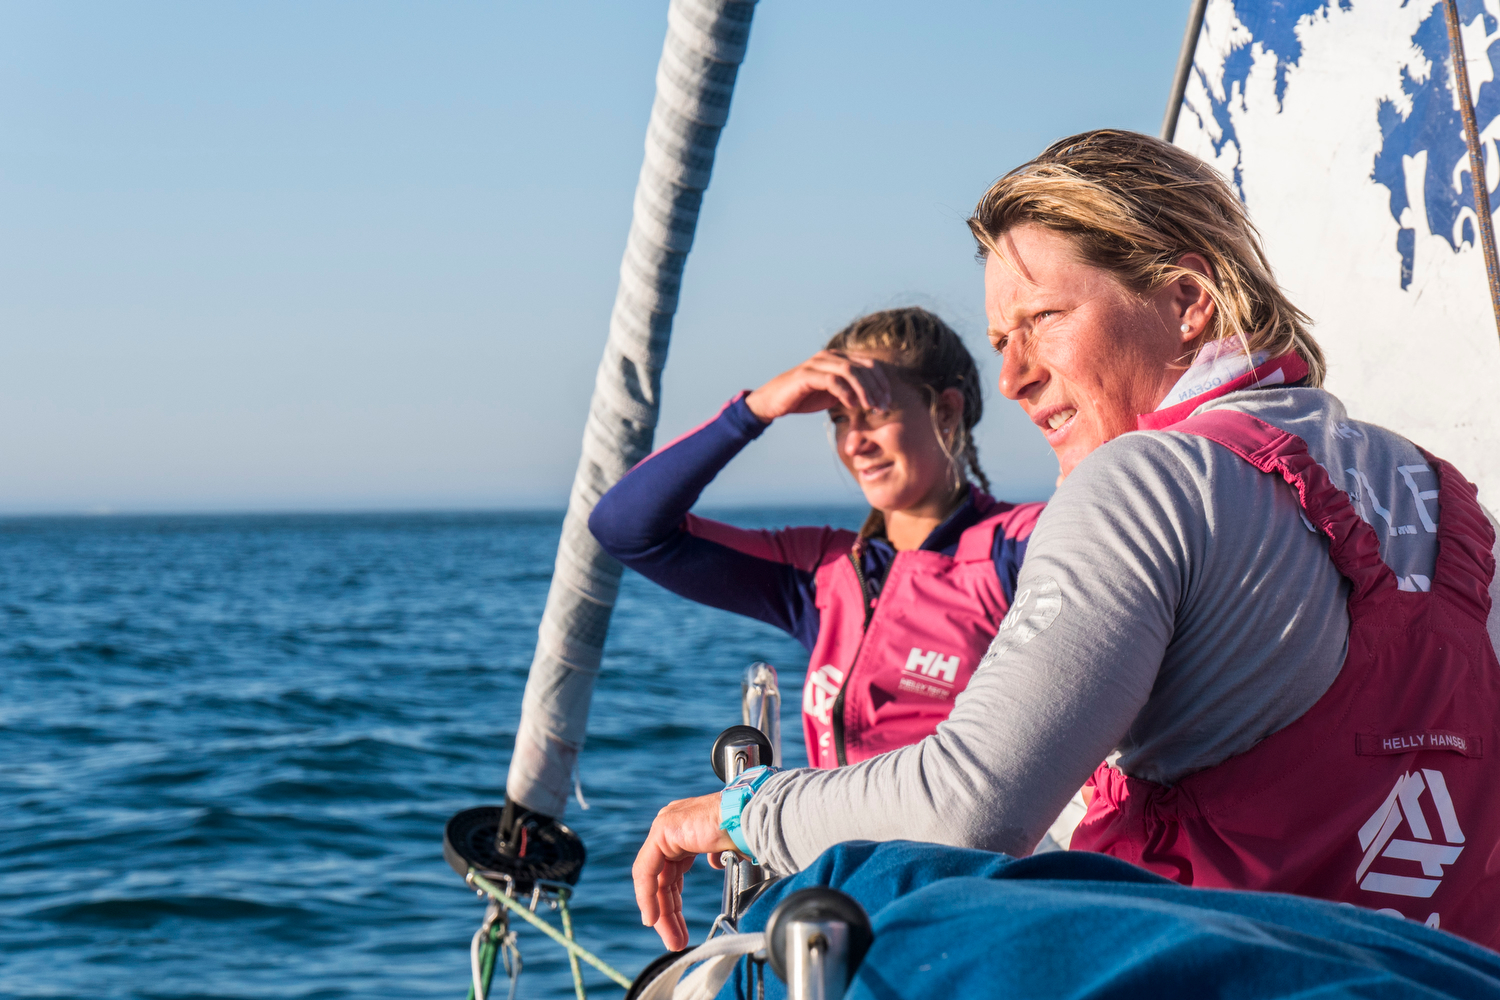 May 27, 2015. Leg 7 to Lisbon onboard Team SCA. Day 10. The team sit 8 miles out from the finish line in Lisbon with little to no wind.